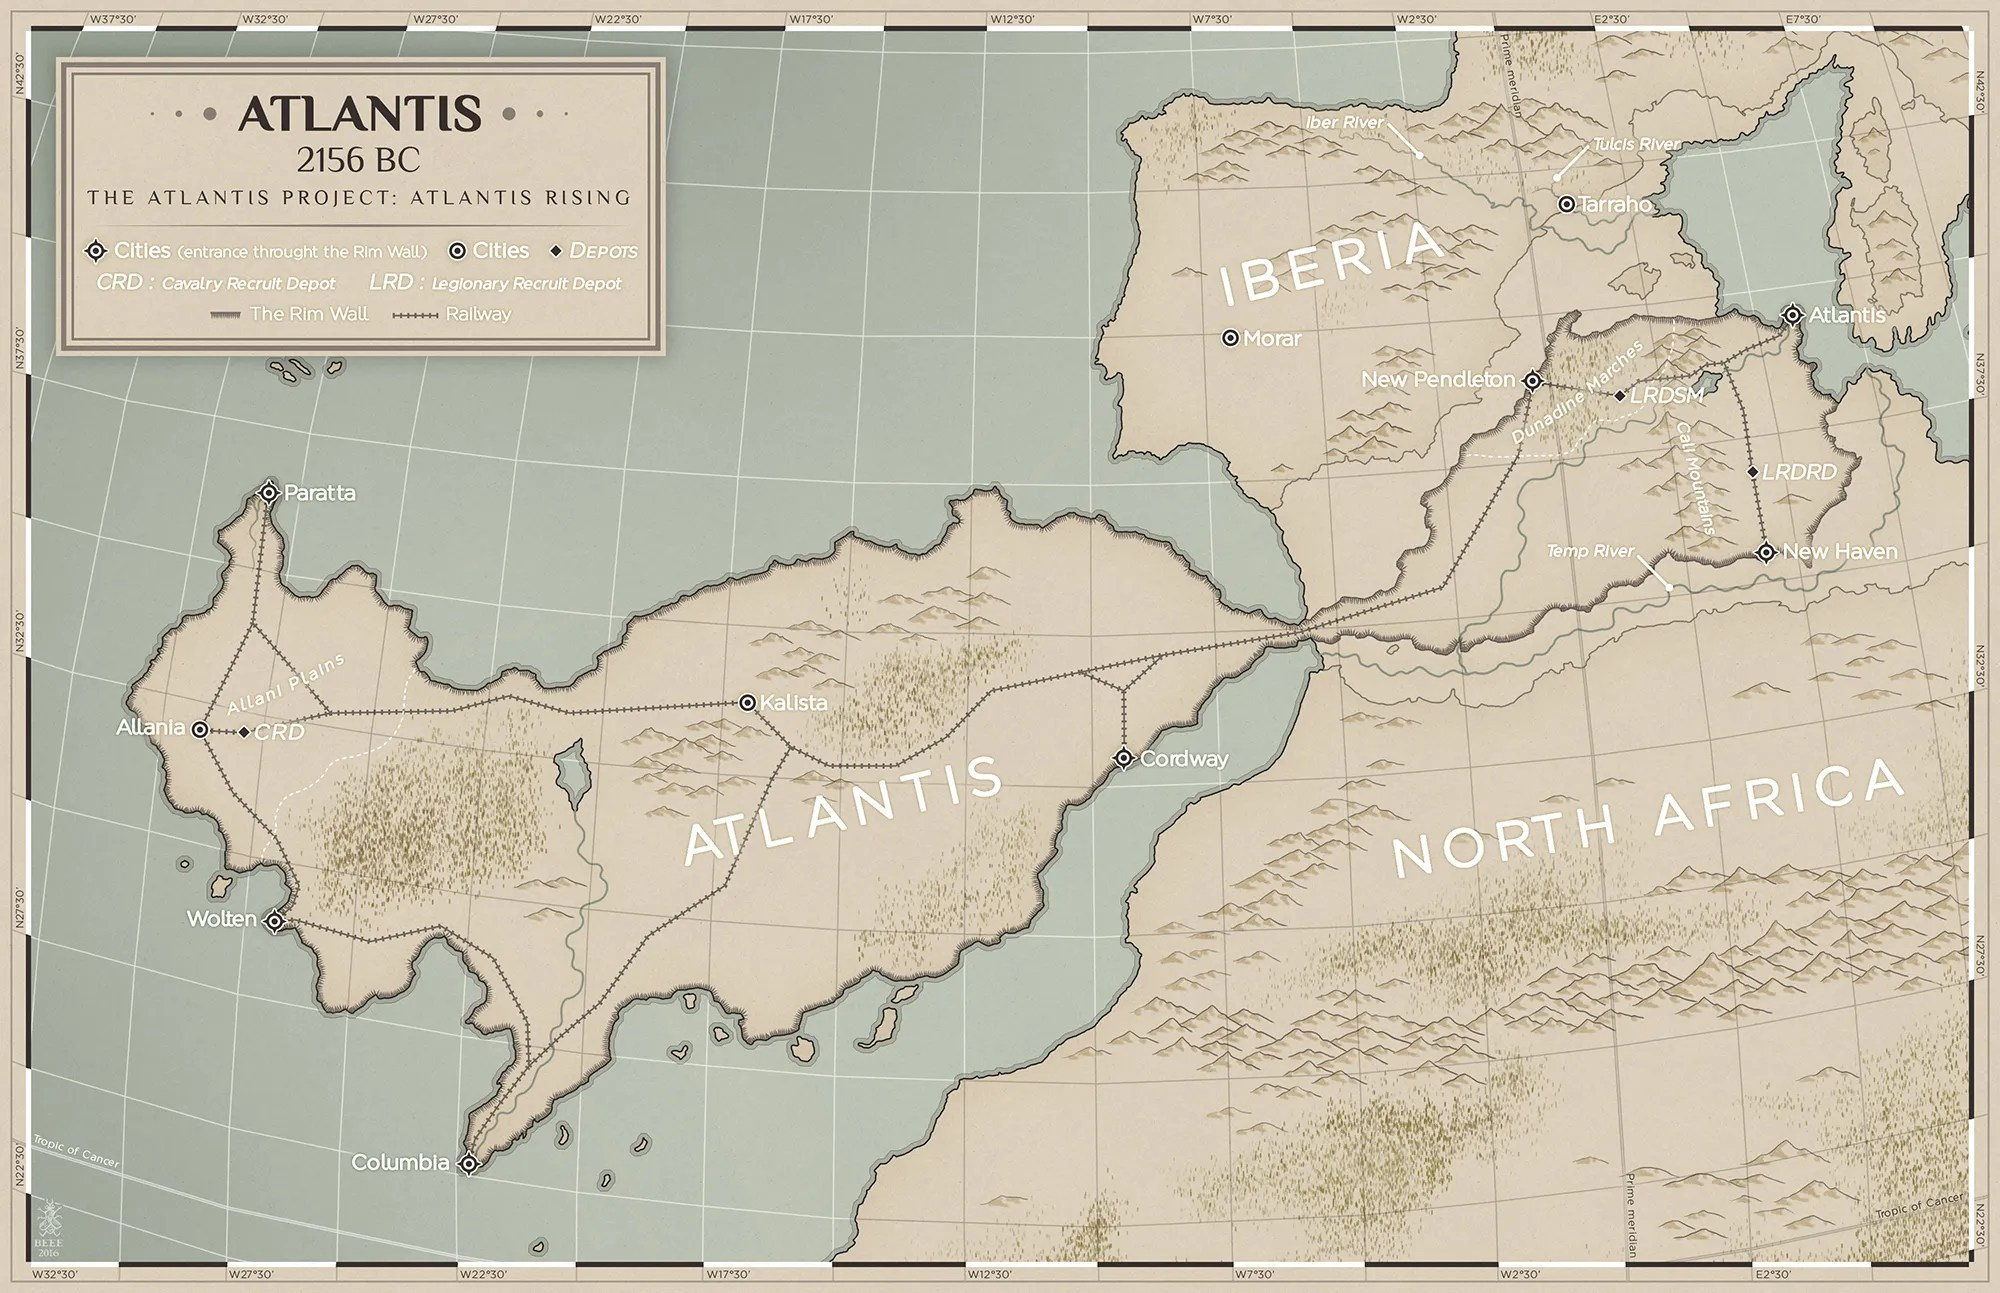 The Atlantis Project Series Atlantis Rising by Jake Parrick Map of Atlantis. The City of Atlantis is on the eastern coast. Epic Fantasy Book One of the Lightbearer Archive.